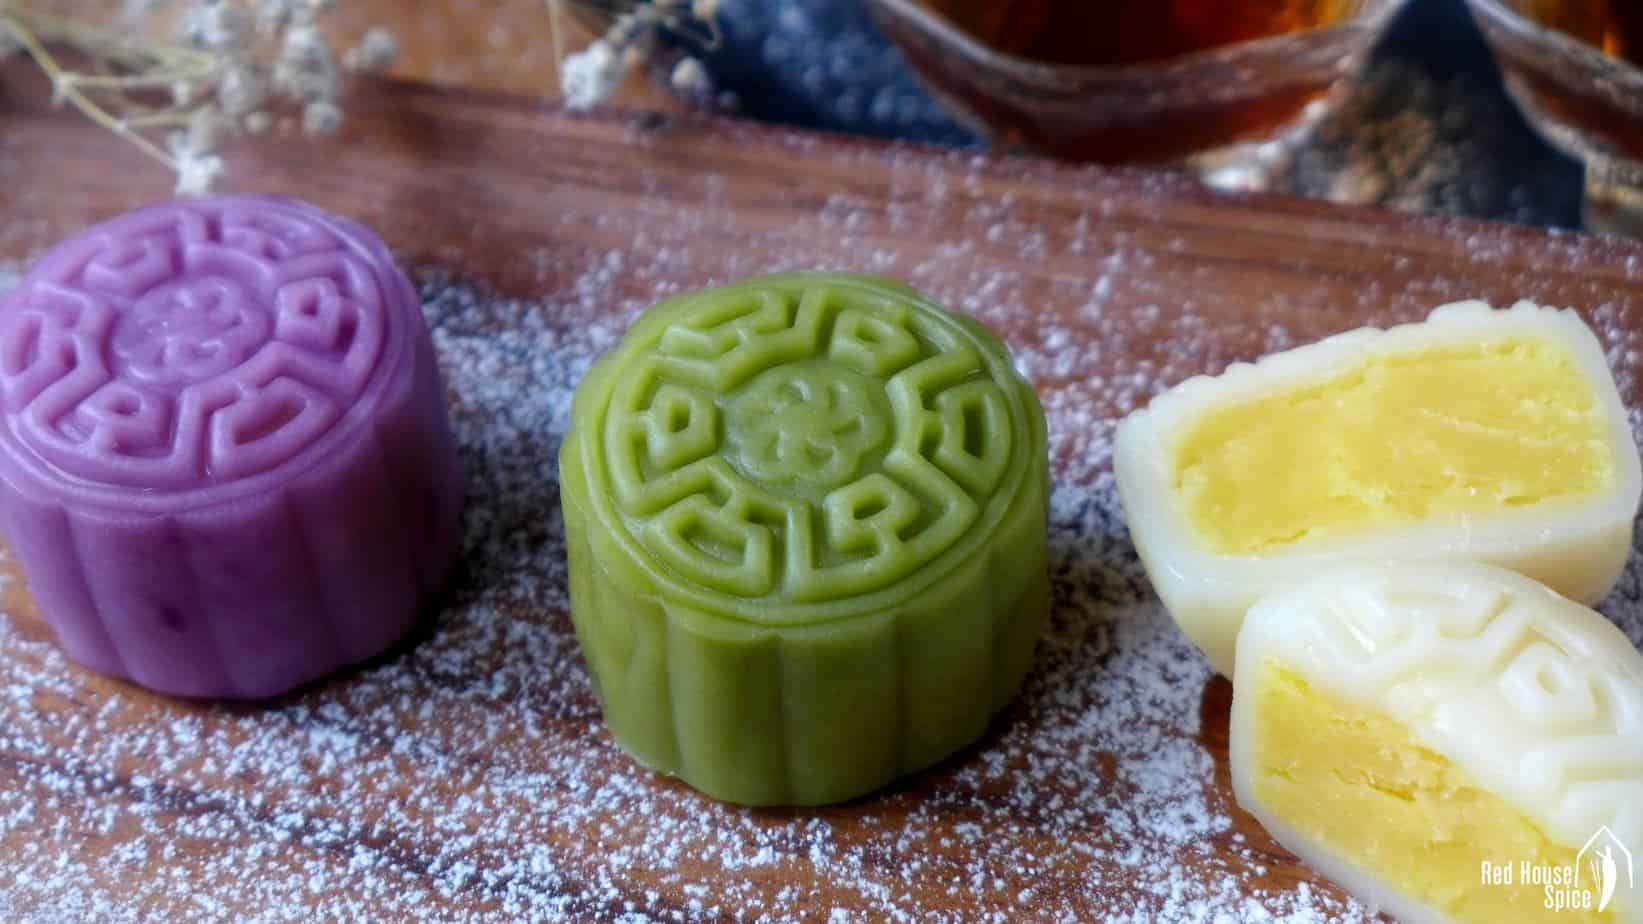 Snow skin mooncake with custard filling (冰皮月饼)